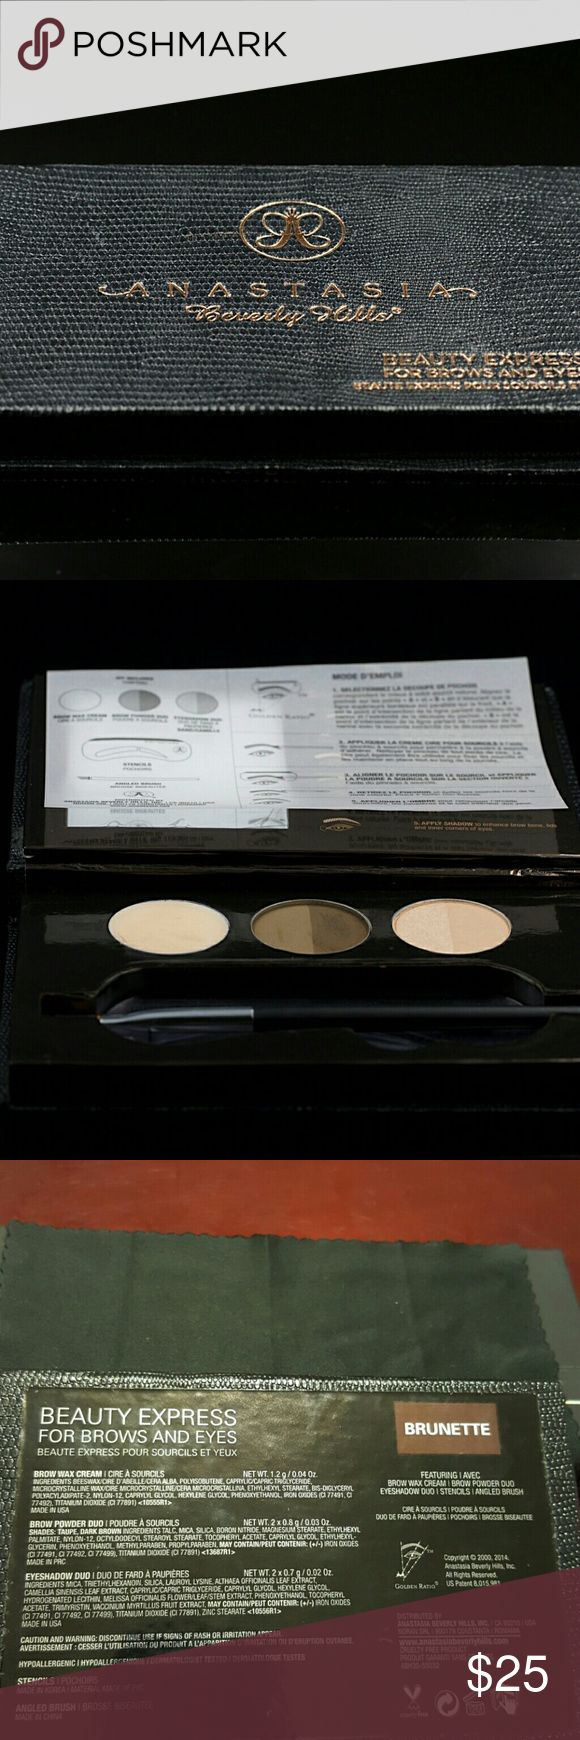 Anastasia Beverly Hills Eyebrow Palette Anastasia Beverly Hills Eyebrow Palette in Brunette  Used once. Anastasia Beverly Hills Makeup Eyebrow Filler